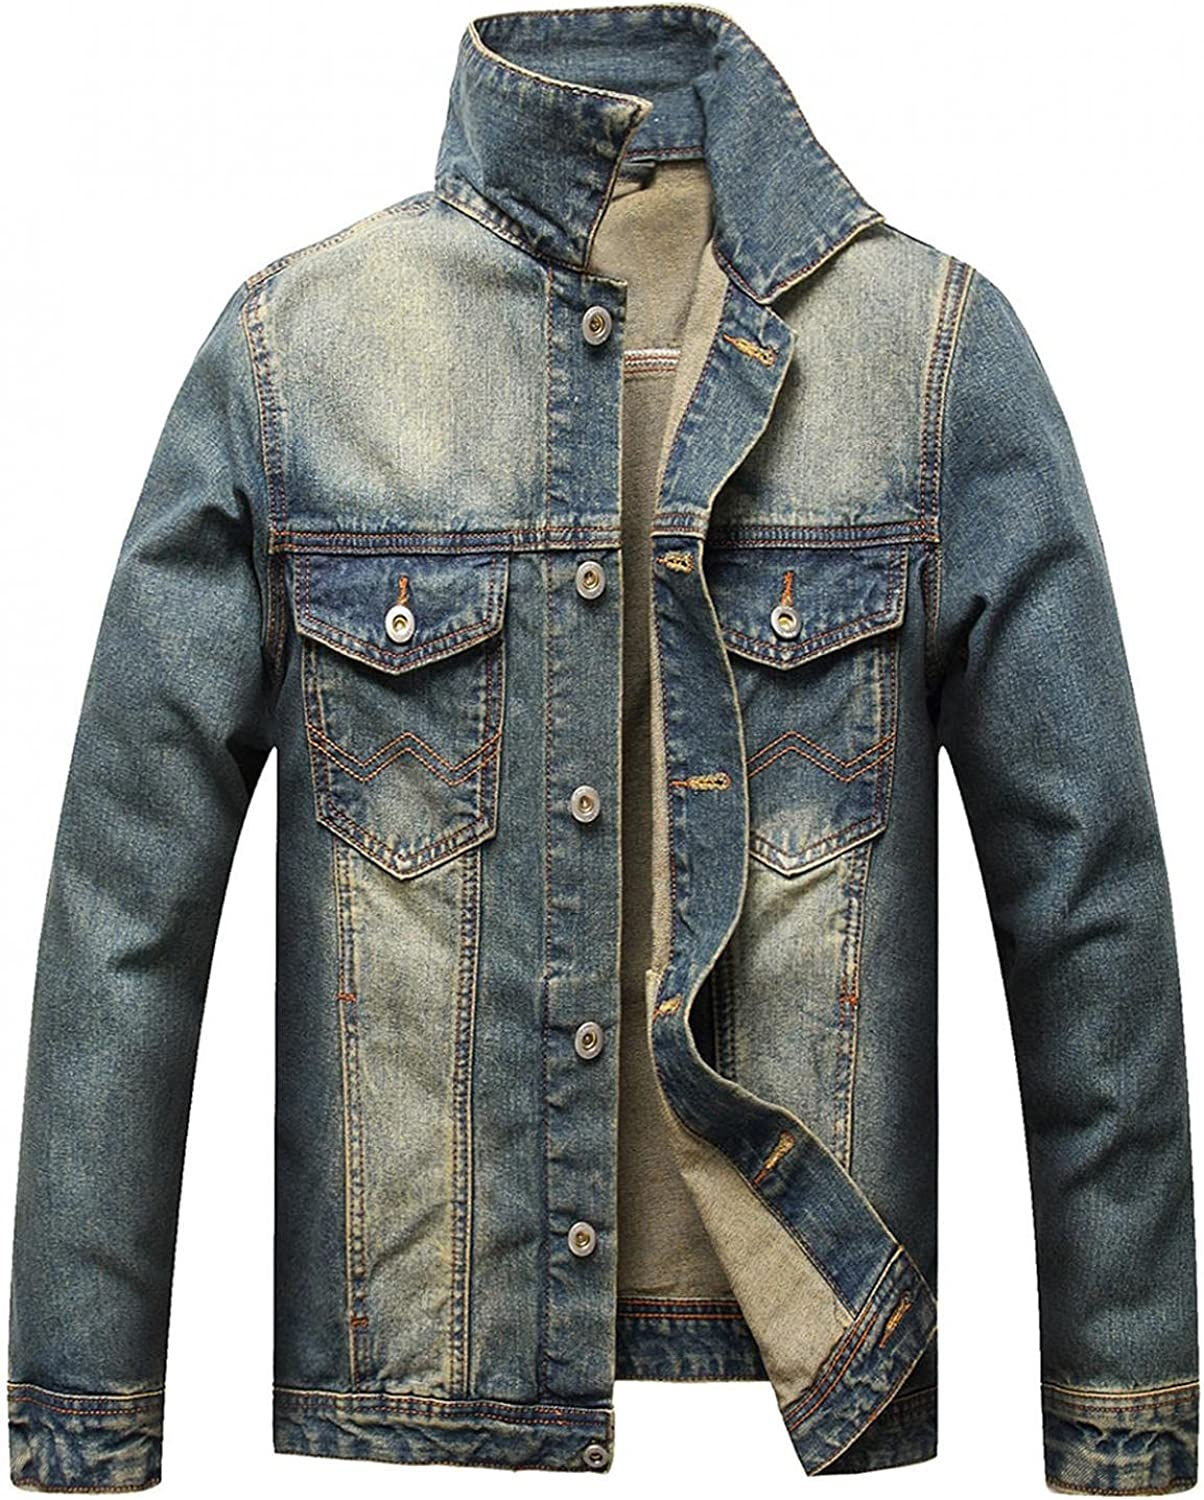 Beshion Jean Jacket for Men Ripped Slim Fit Denim Jacket Distressed Button Front Casual Trucker Coat with Pocket